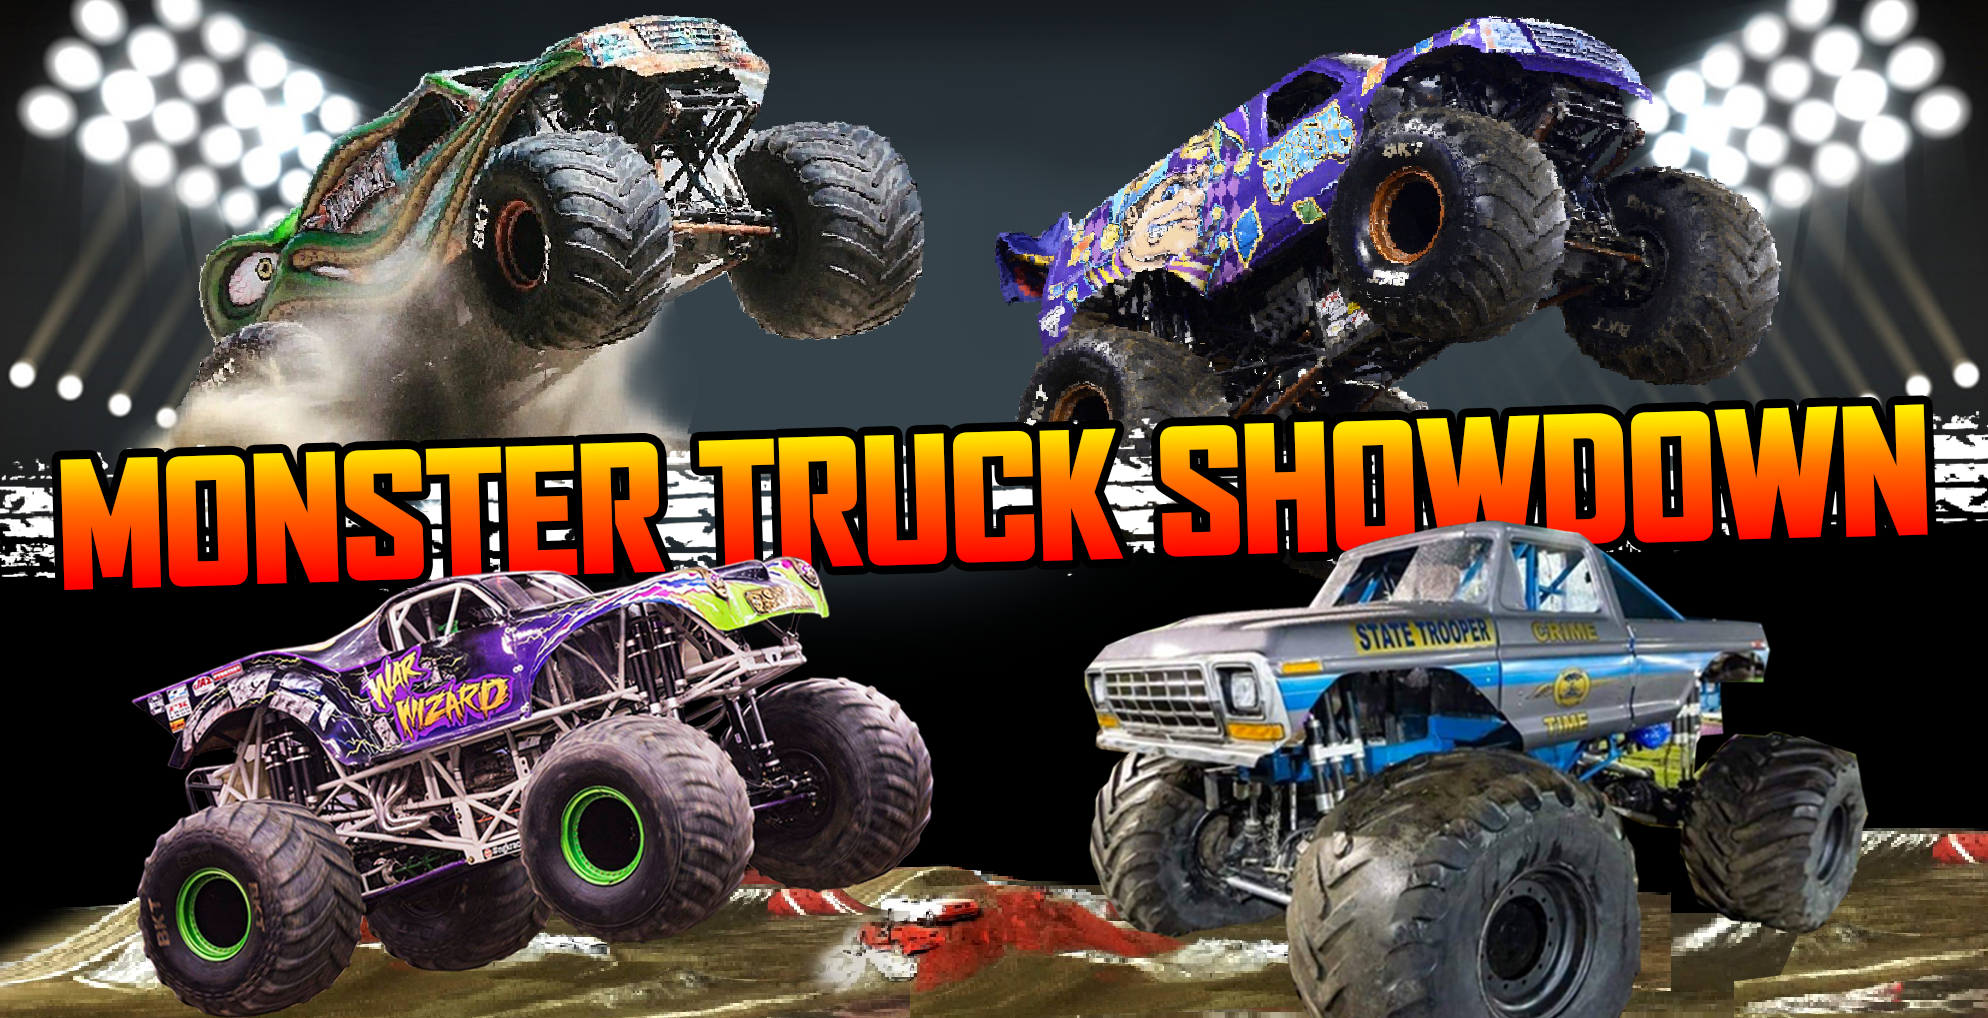 monstertruckshowdown.png